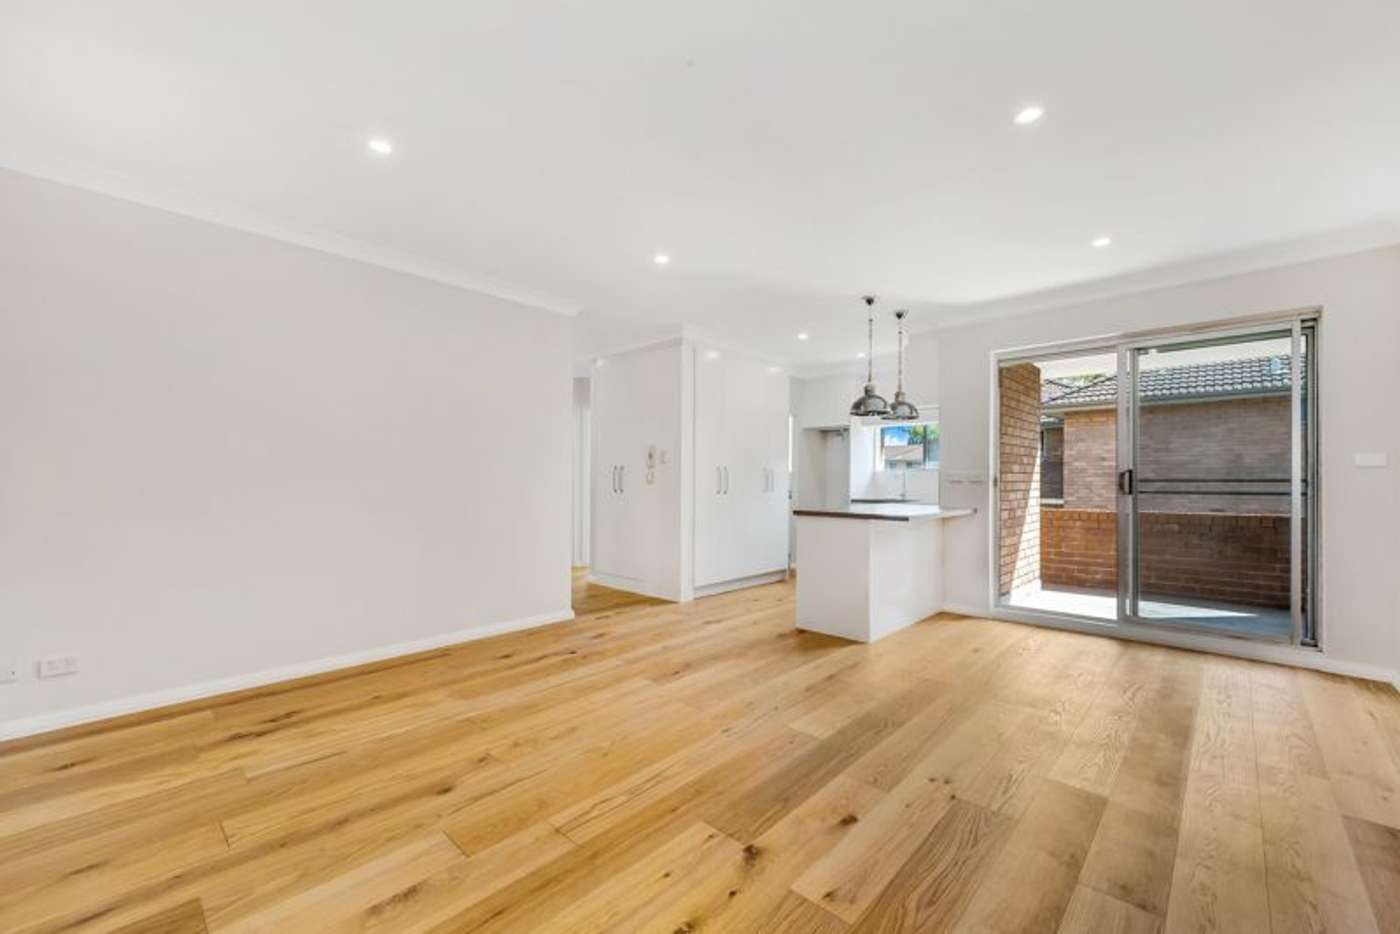 Main view of Homely apartment listing, 10/27-29 Morrison Road, Gladesville NSW 2111